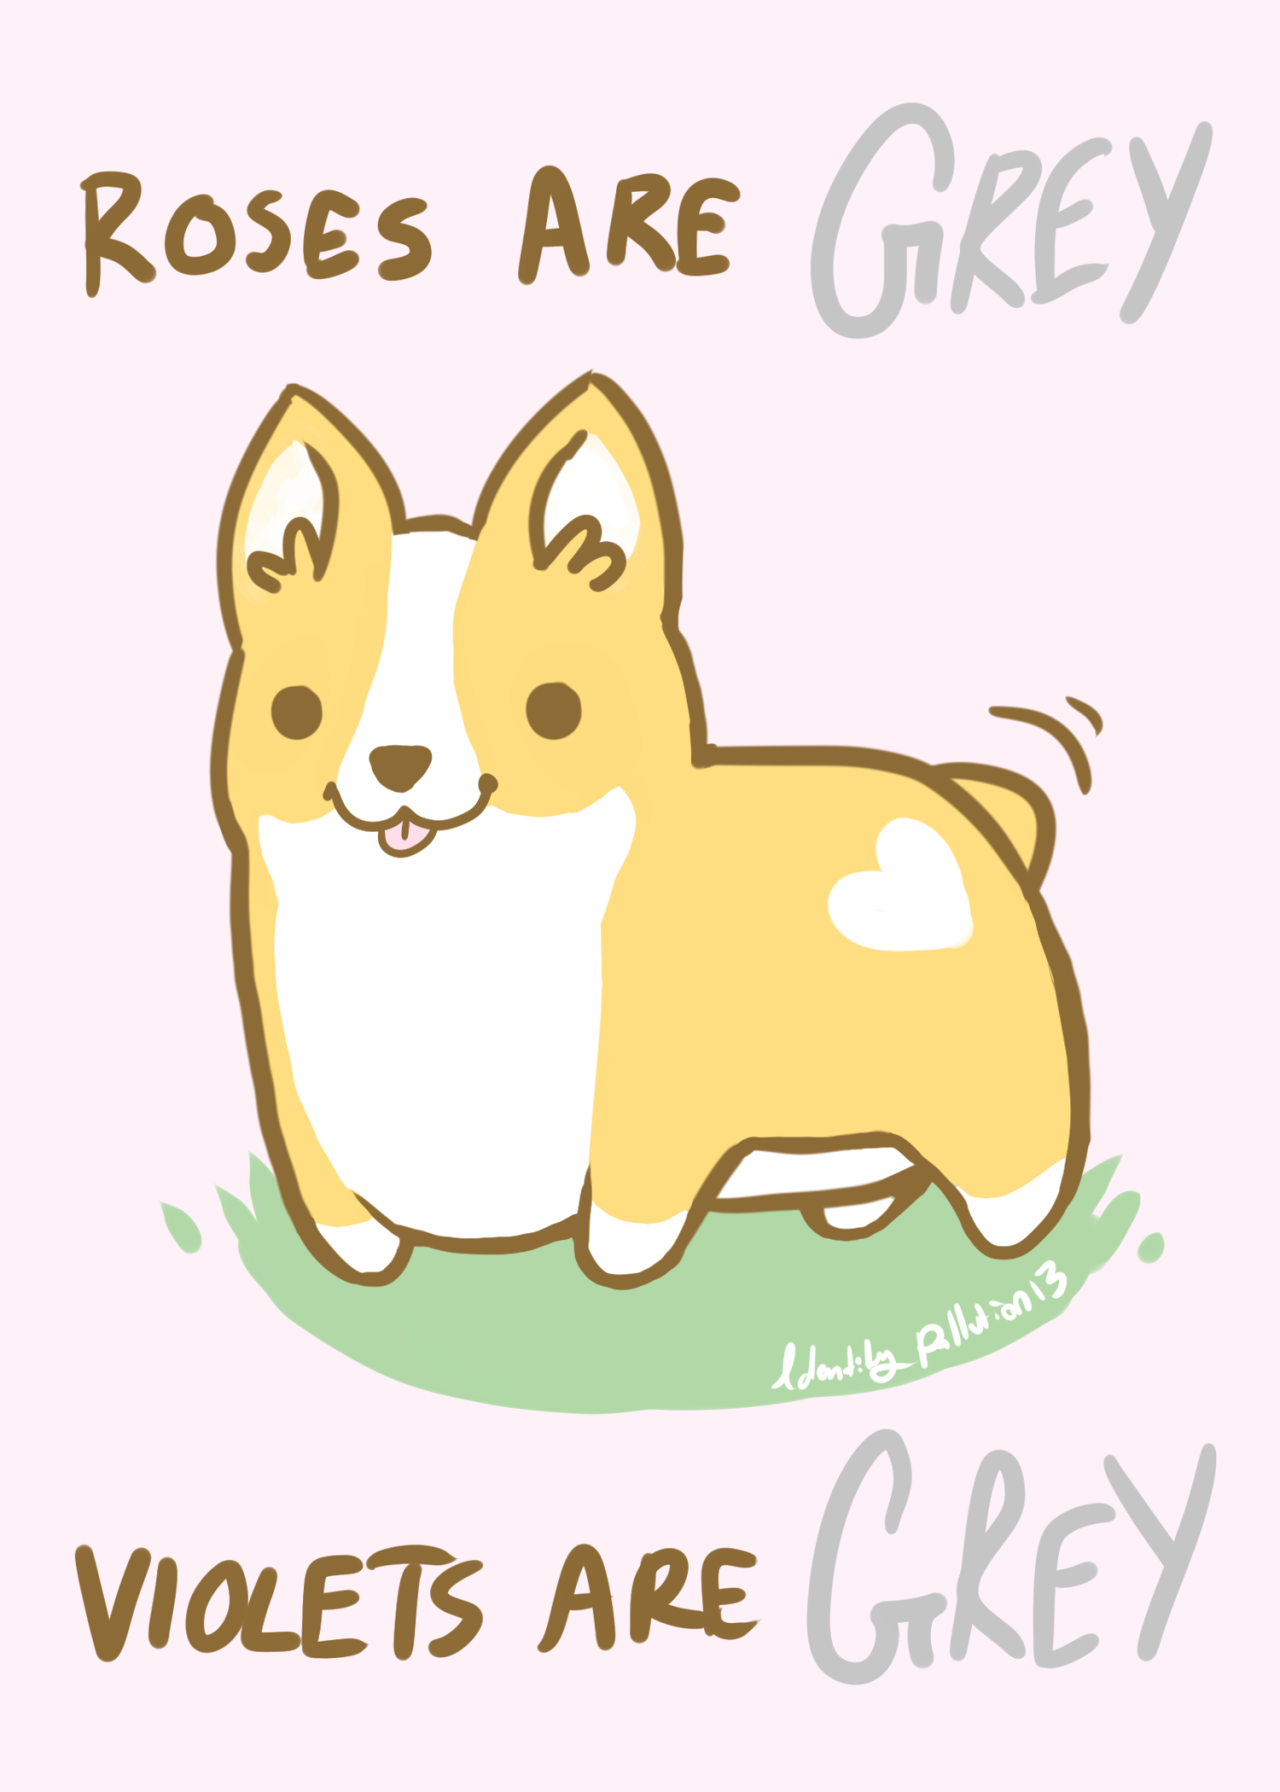 identitypollution:  I drew some corgis and now corgi Valentine cards are available in my new redbubble shop for only $2.08 postcards, $2.60 4X6 cards, $3.90 5X7.5 cards!  I am getting married on March 2nd with a super tiny budget, any sales I can get will be greatly appreciated!  I REALLY WUF YOU ROSES ARE GREY LOTS OF KISSES BUF <3 TRI-COLOUR Also OUR ETSY SHOP has some neat stuff! We are also on FACEBOOK!